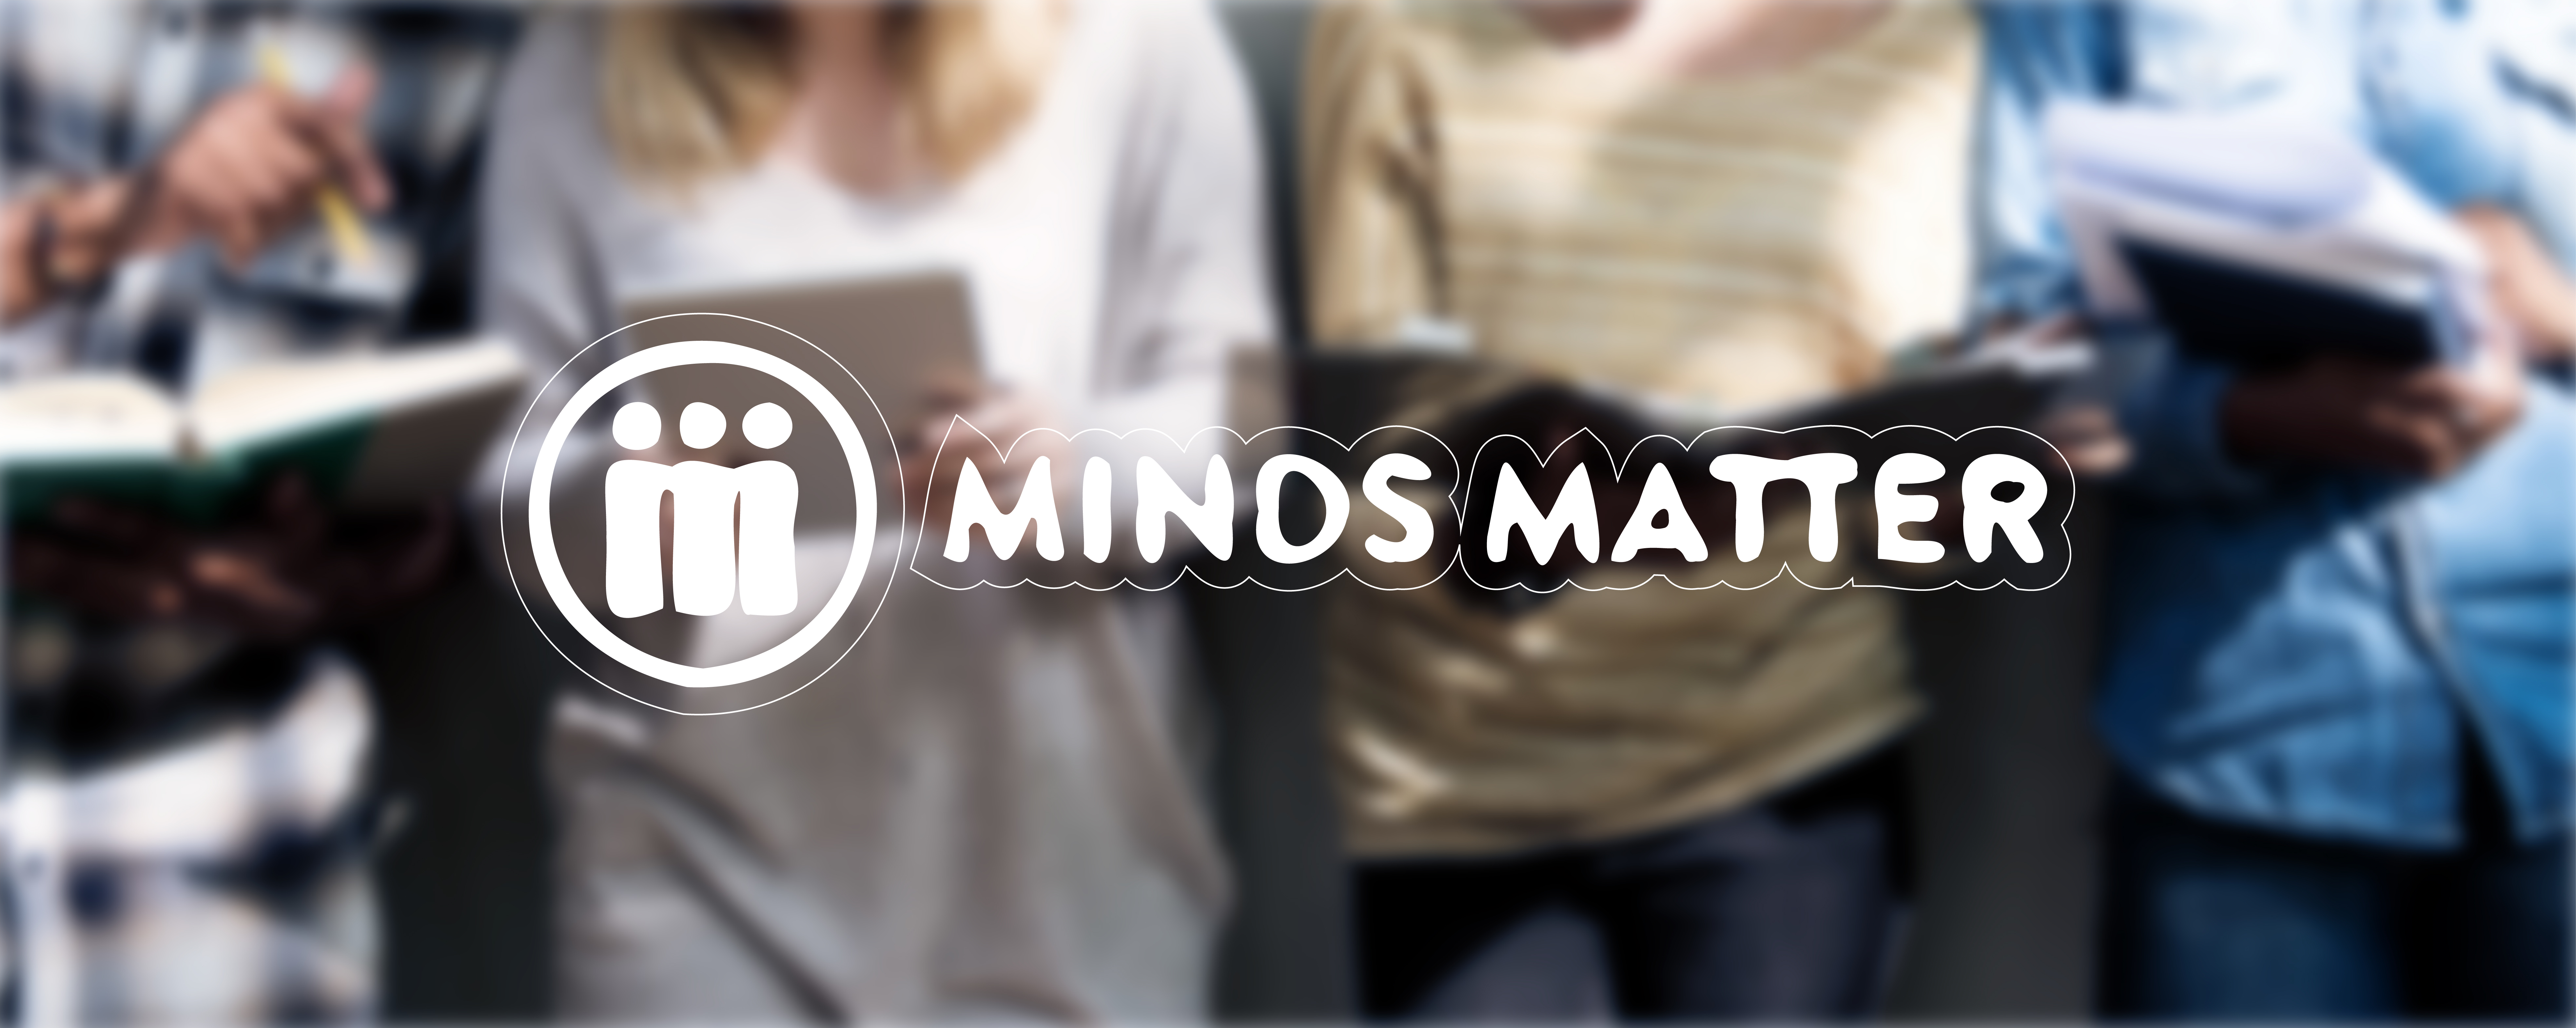 Mind matter - 9 Nonprofits With the Ultimate Mission Mindsets | Botkeeper